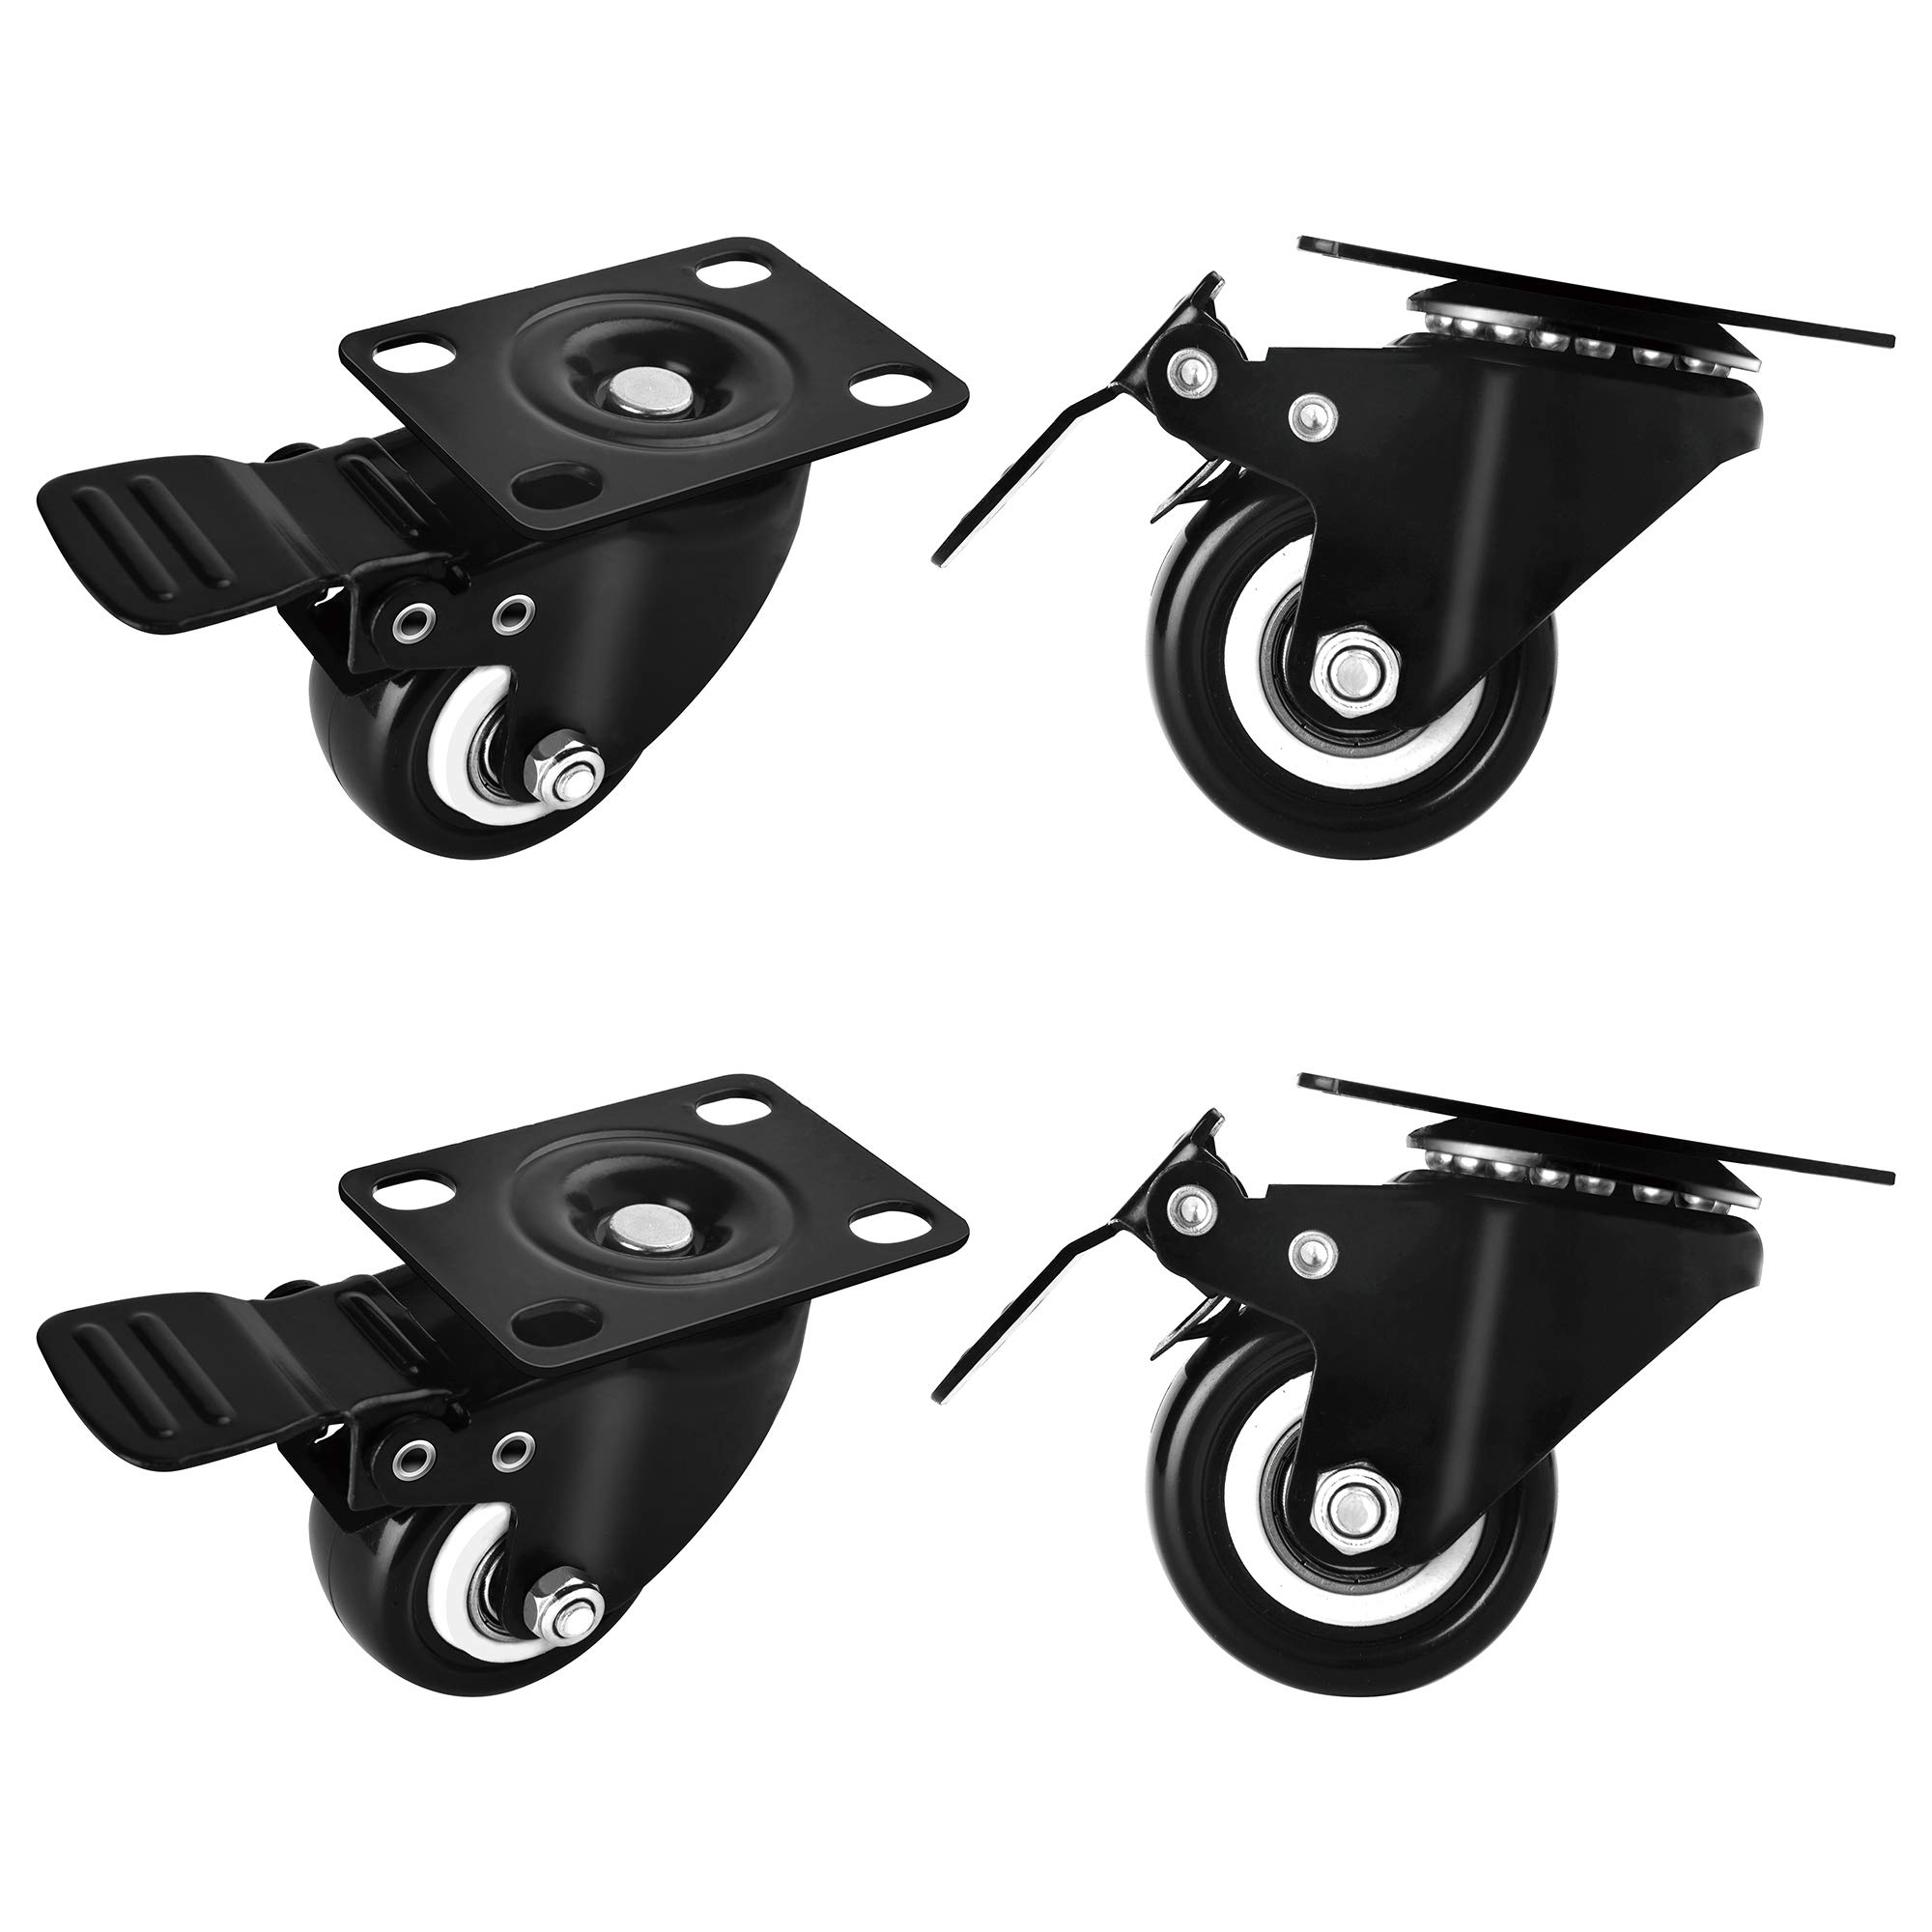 Moogiitools 2'' Swivel Rubber Caster wheels with Safety Dual Locking Heavy Duty 600lbs Set of 4 with Brake by Moogiitools